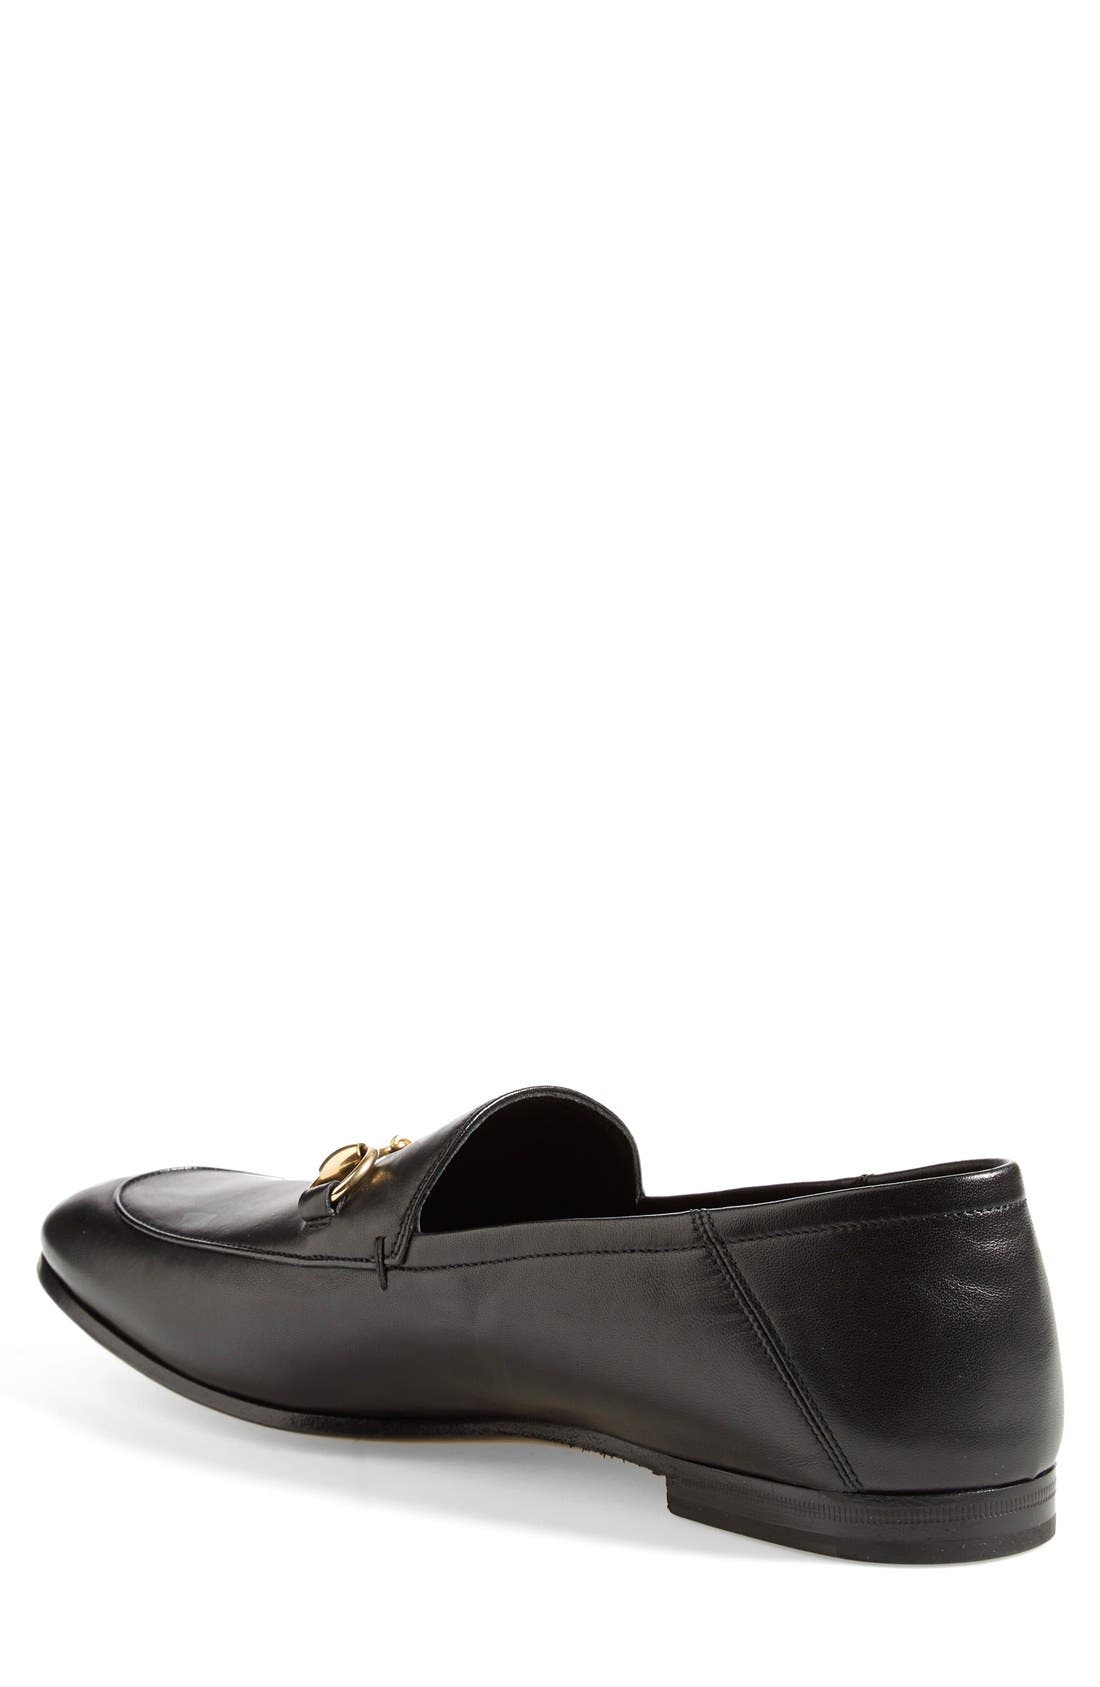 Brixton Leather Loafer,                             Alternate thumbnail 3, color,                             NERO LEATHER